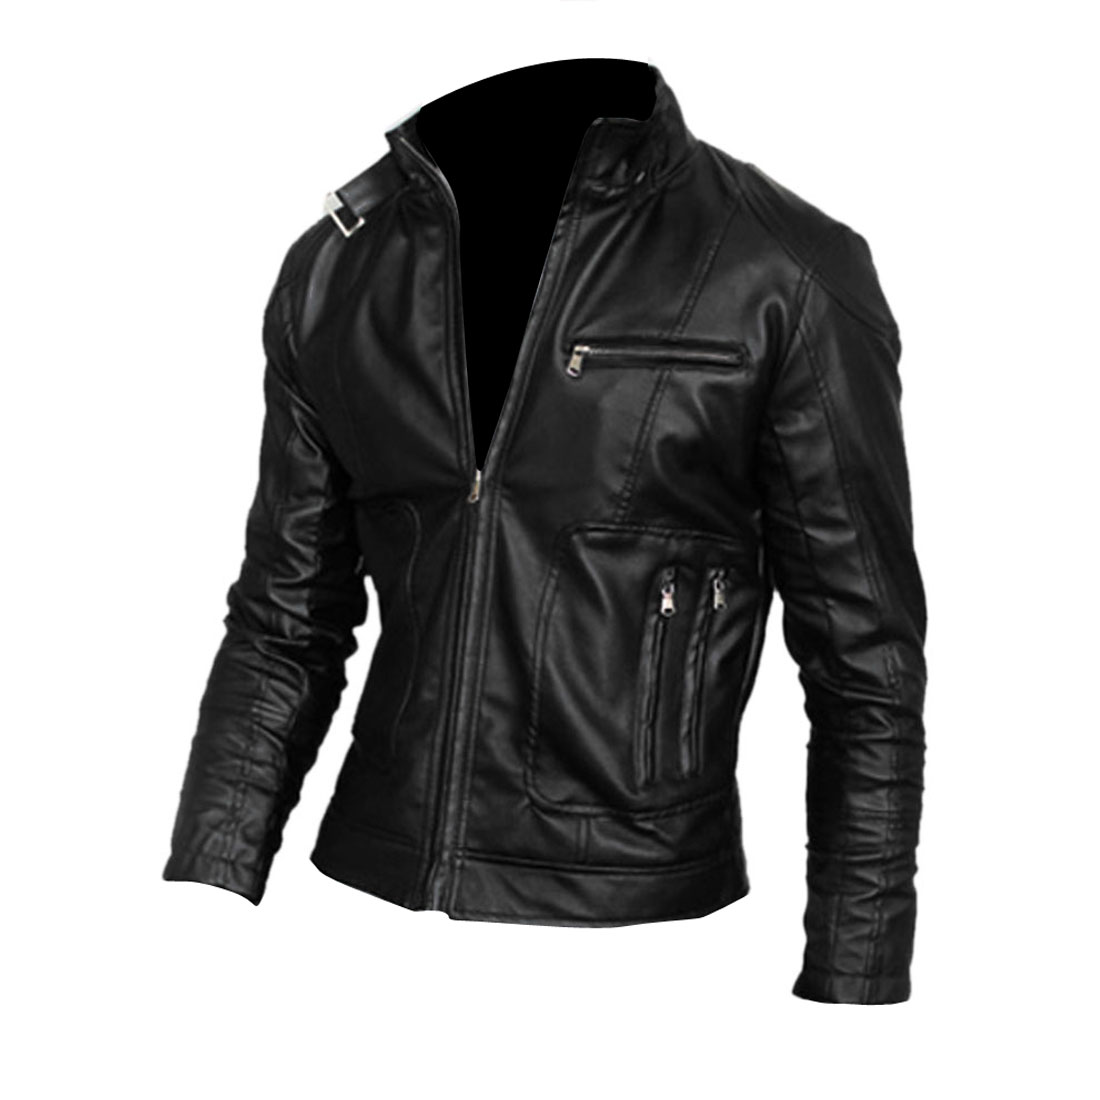 Men's Black Stand Collar Zip Up Stylish Soft Leather Jacket M